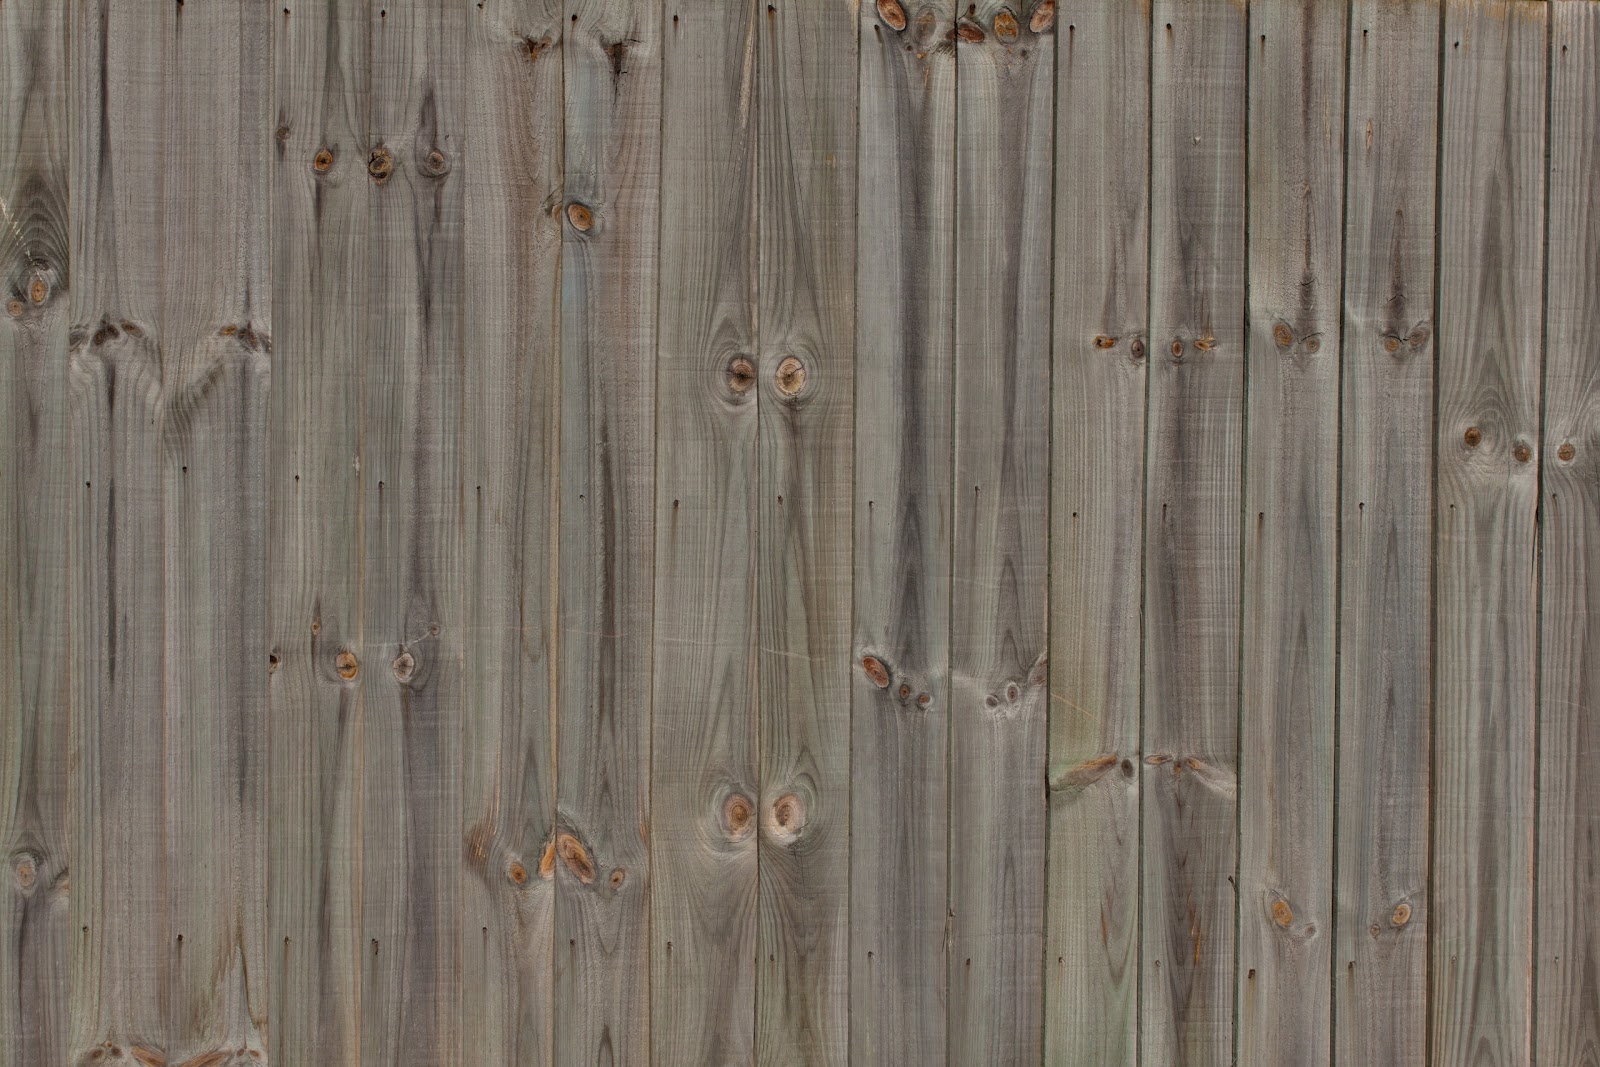 fence mature personals 29 white picket fences 30 pools & patios f3 mainstream families and mature singles mature years (m) includes segments whose residents are.